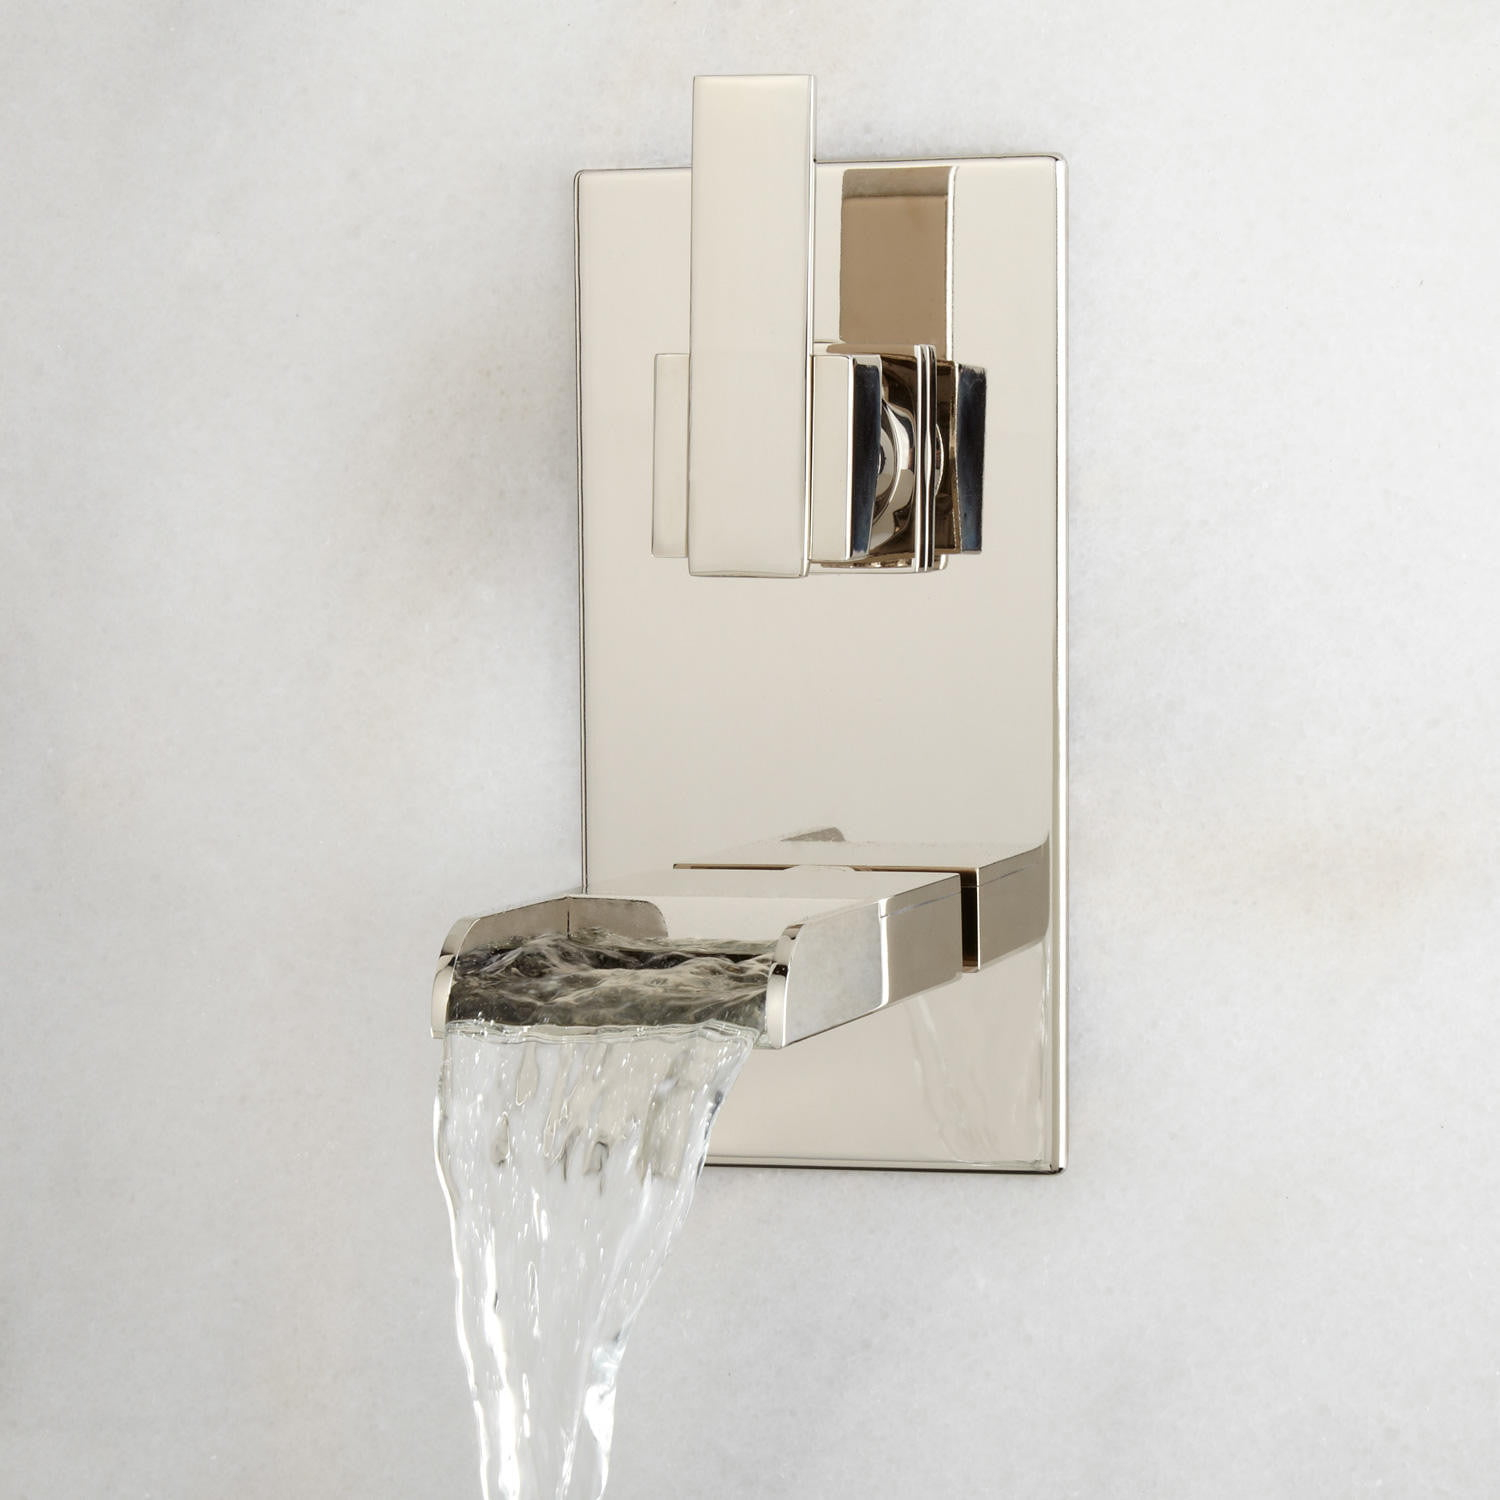 Willis Wall Mount Bathroom Waterfall Faucet Bathroom inside sizing 1500 X 1500